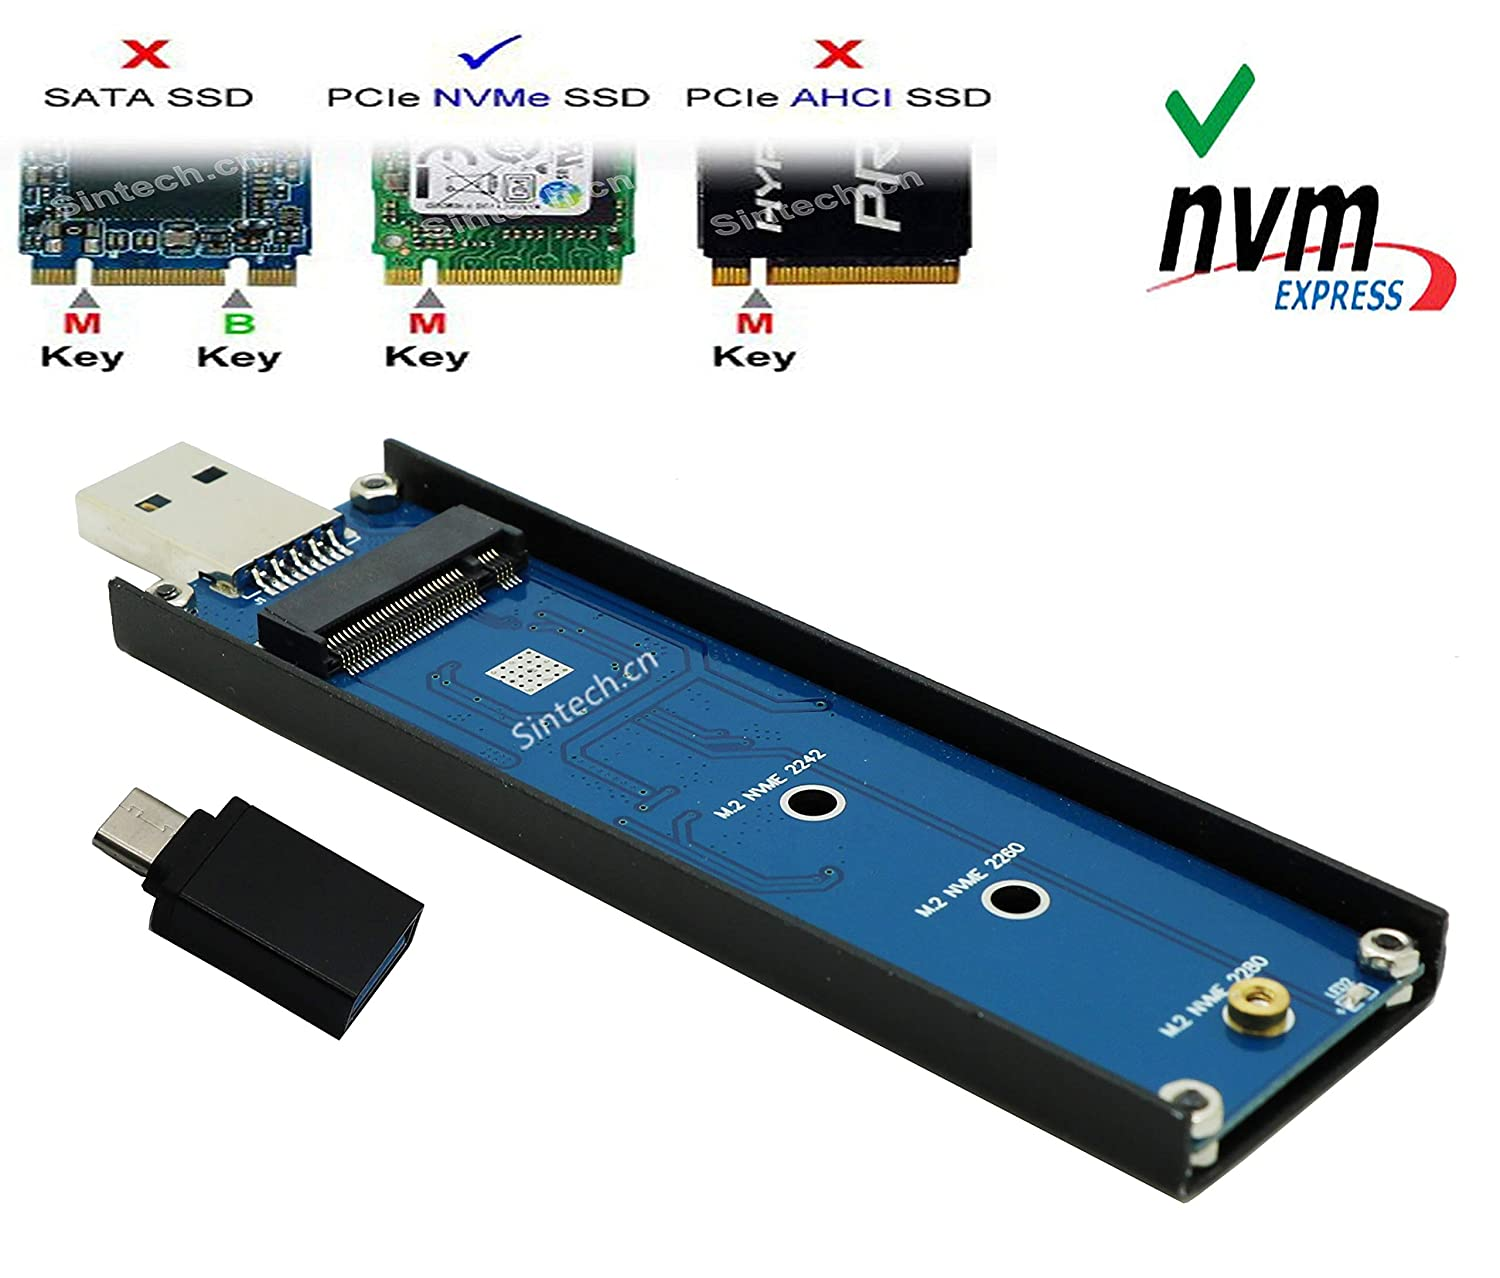 M.2 NVMe M-Key PCIe SSD to USB 3.0 Adapter Enclosure Case for 960 970 Evo Pro